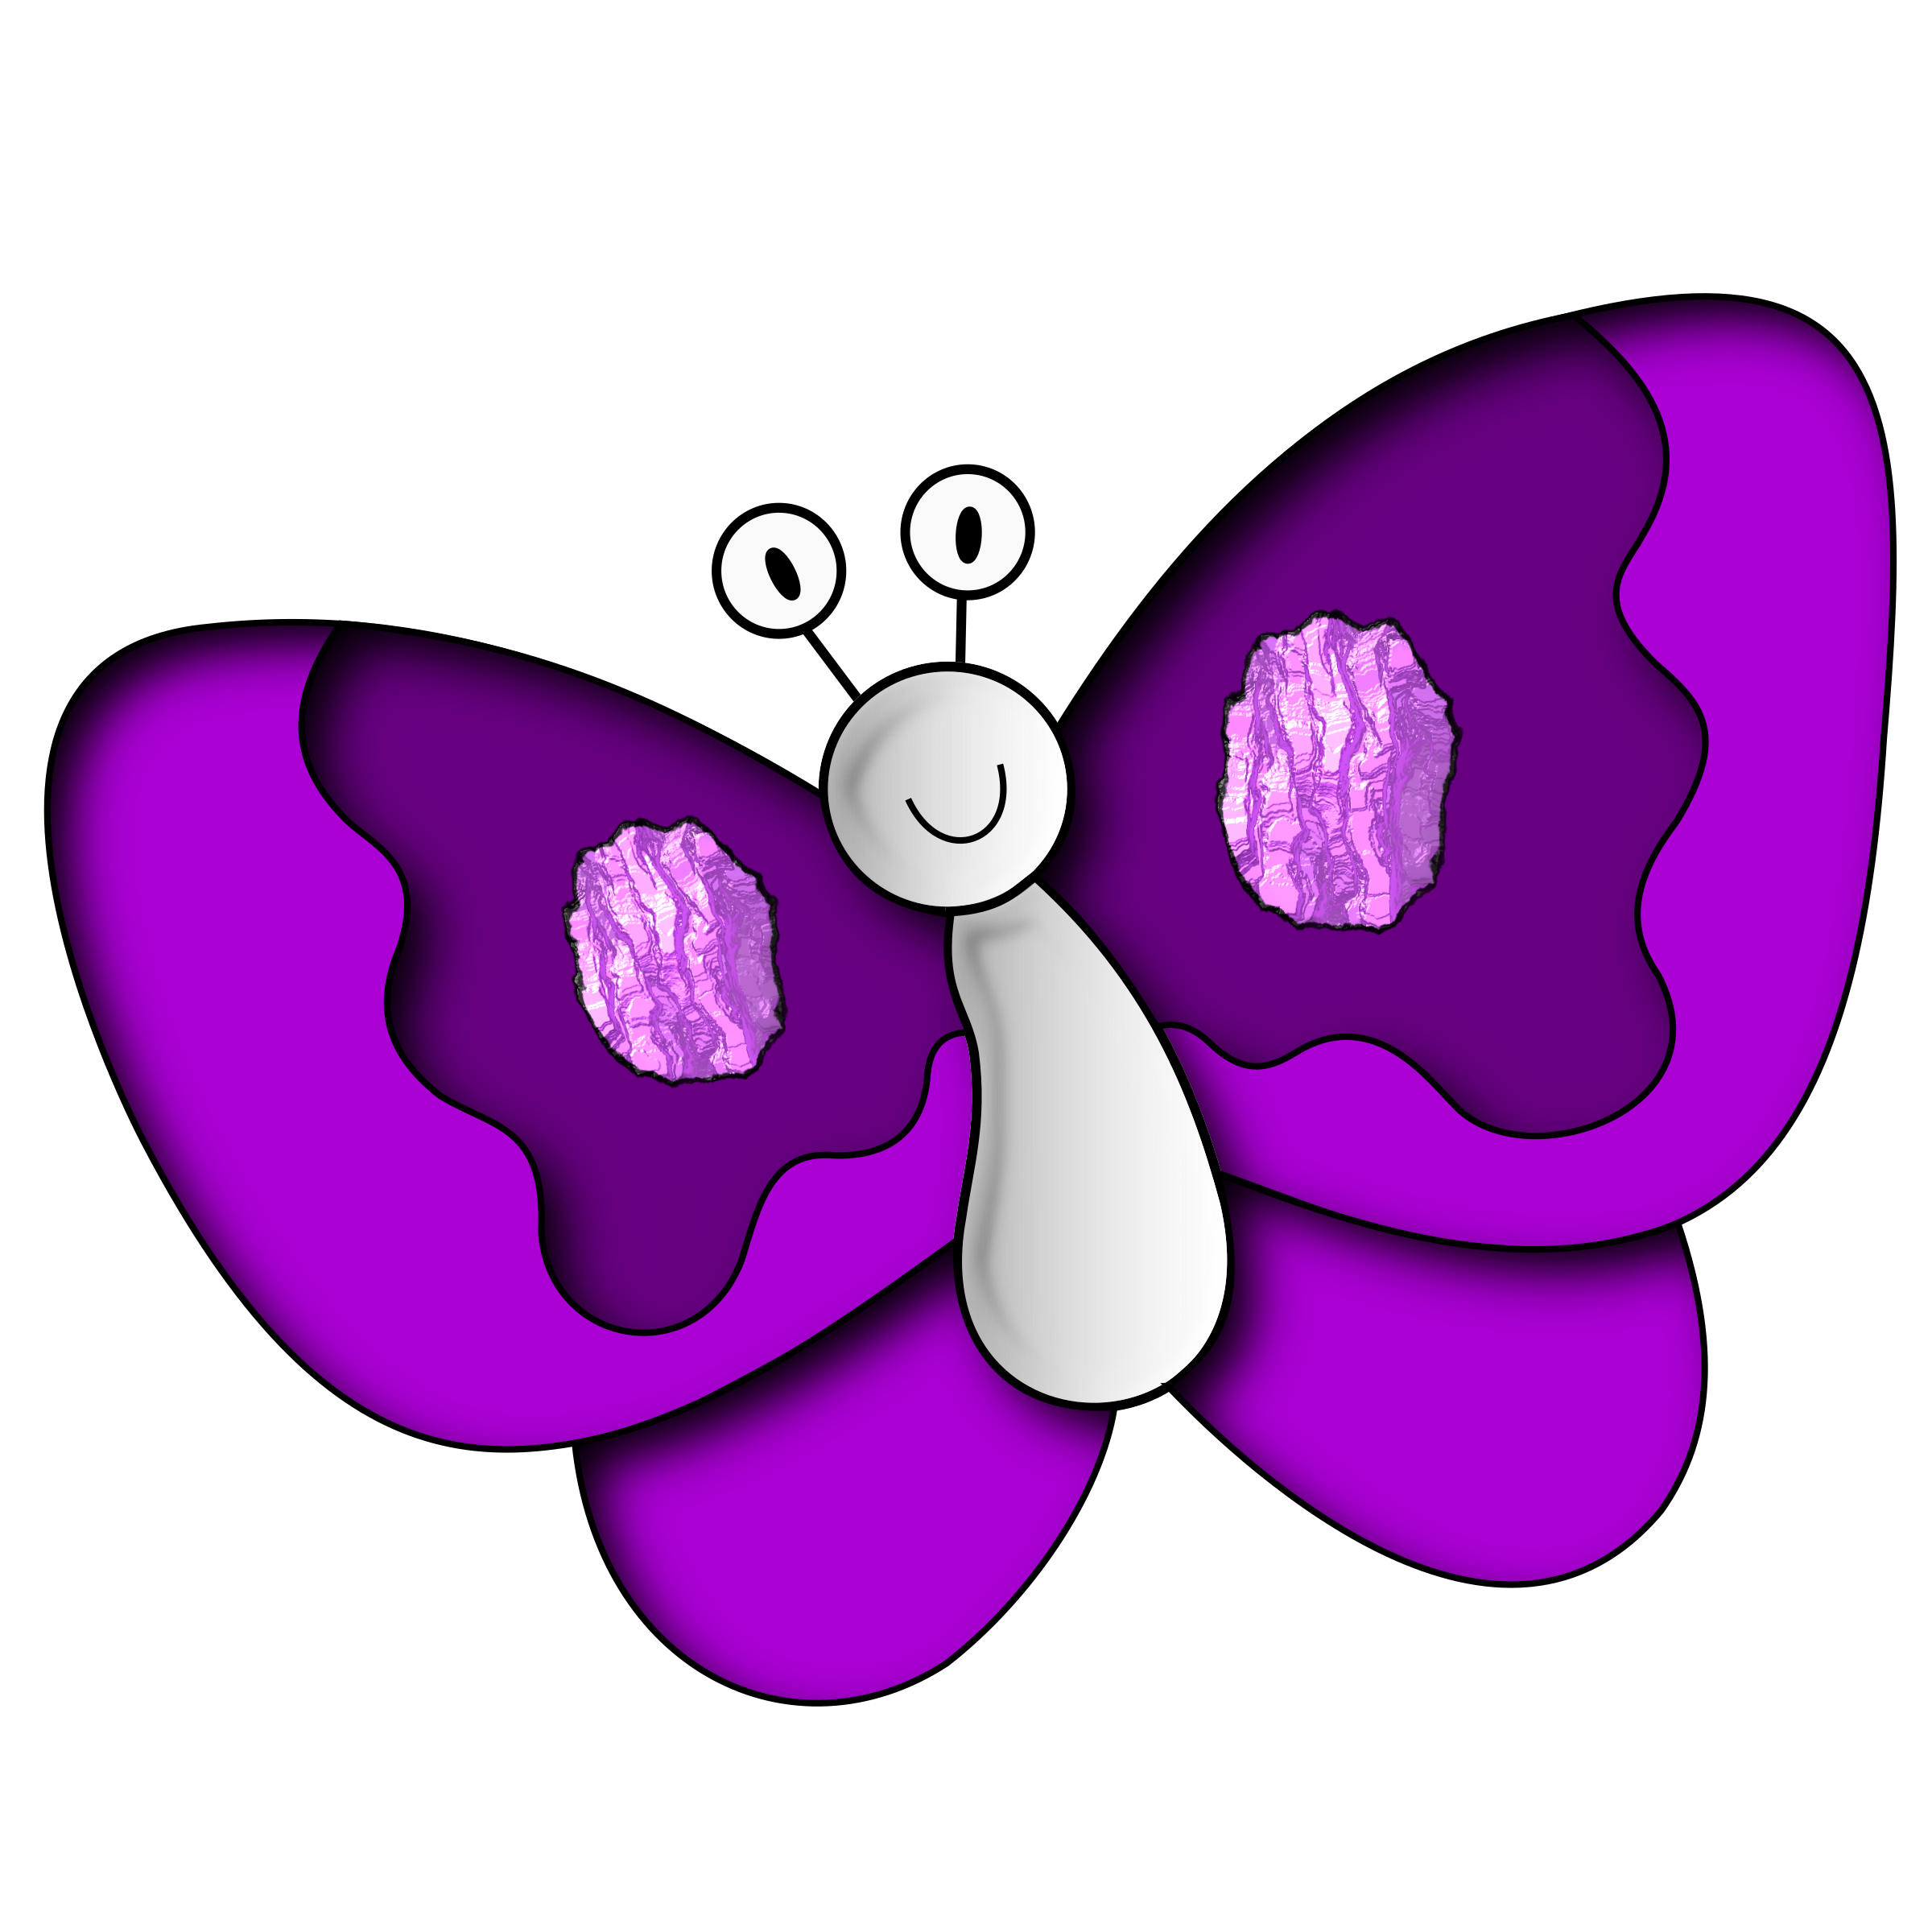 Markers clipart magenta. Butterfly purple big image